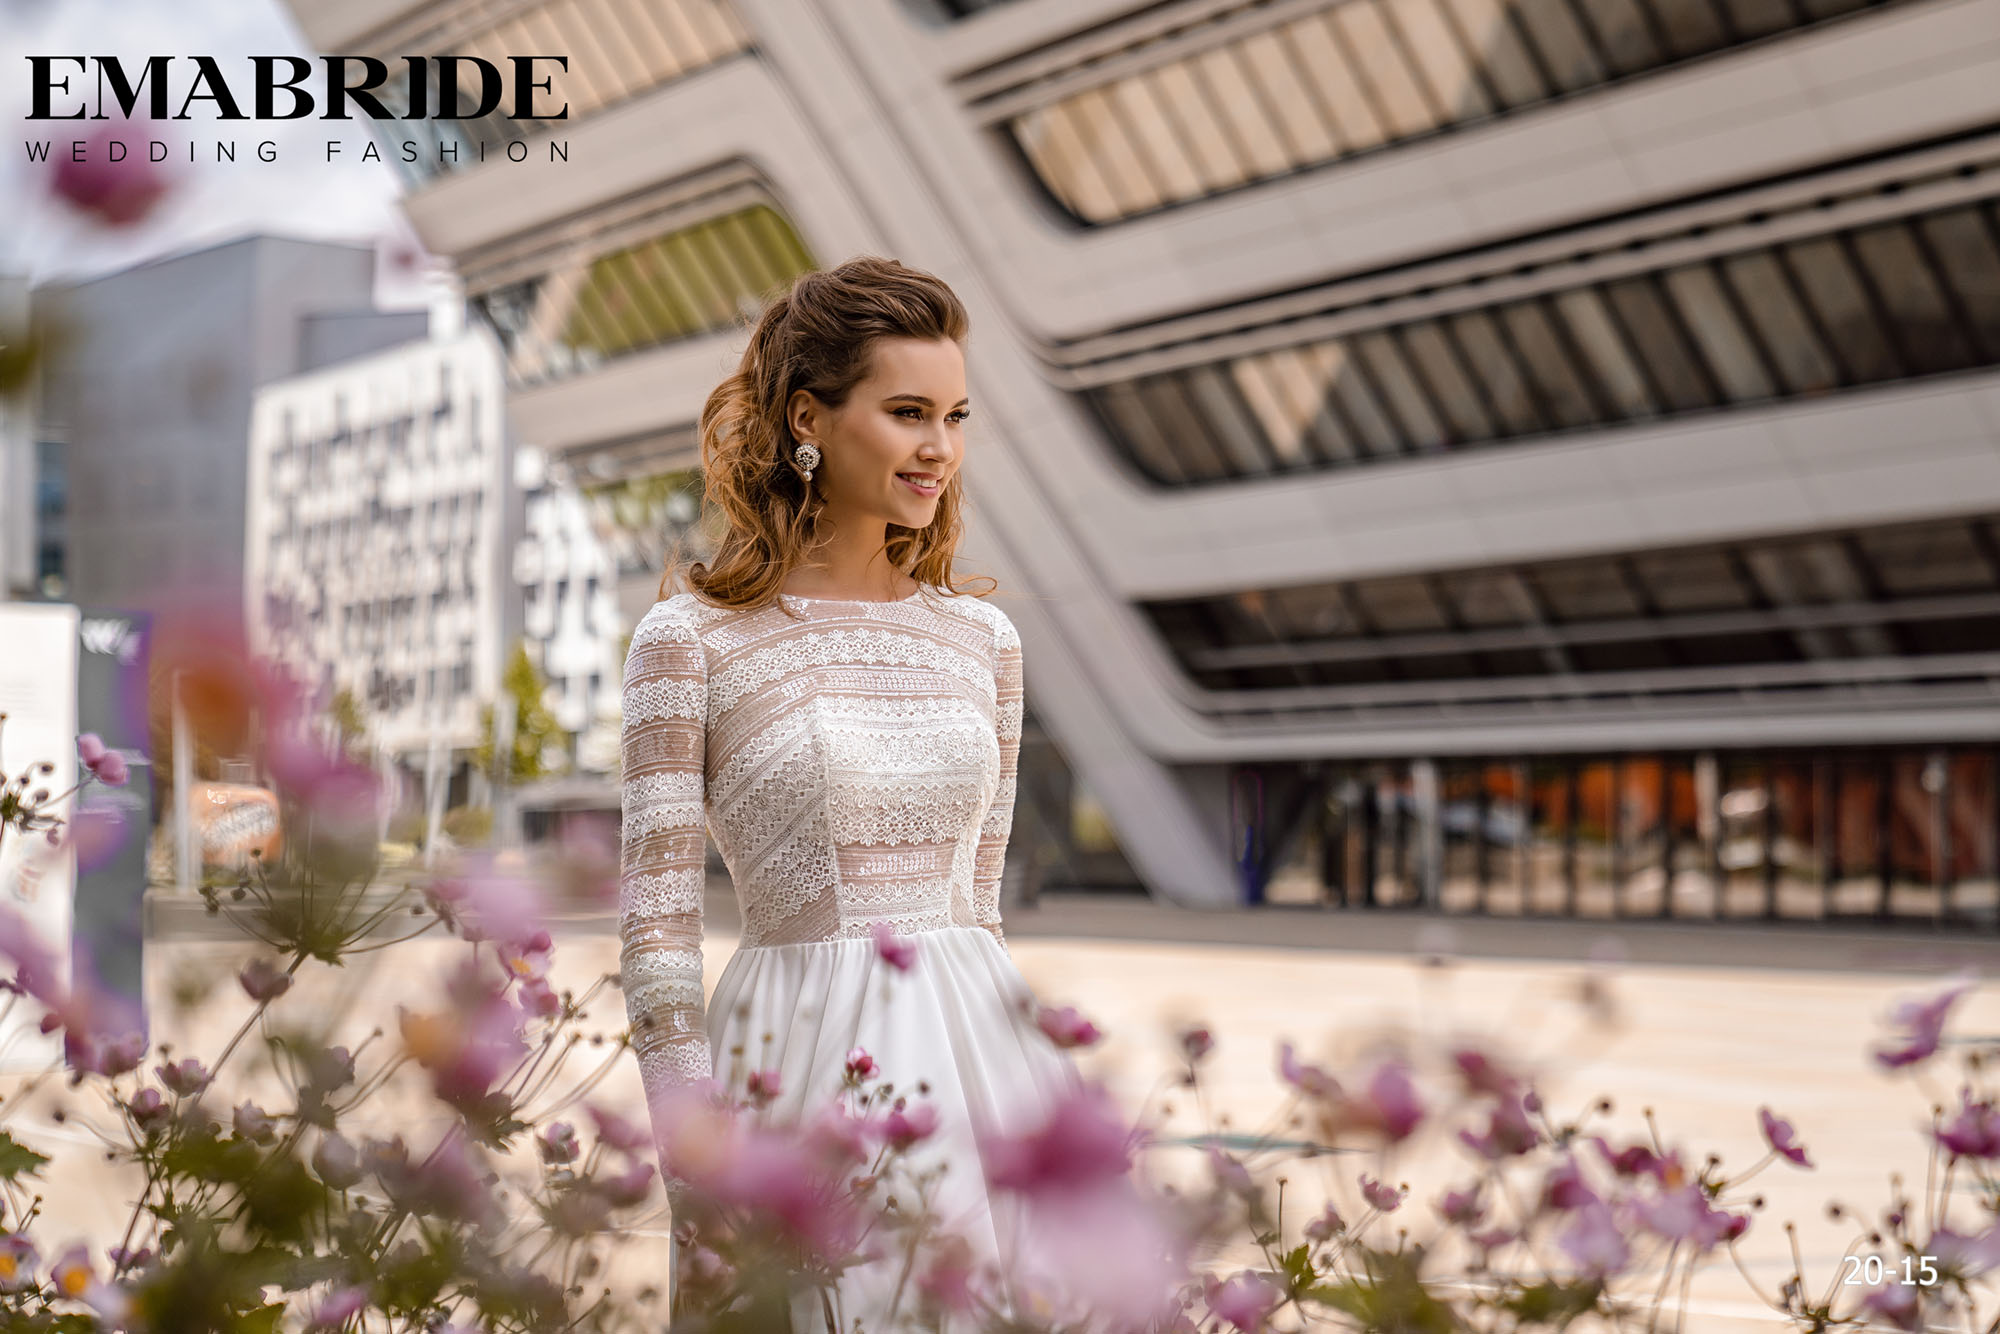 Model 20-15 | Buy wedding dresses wholesale by the ukrainian manufacturer Emabride-1